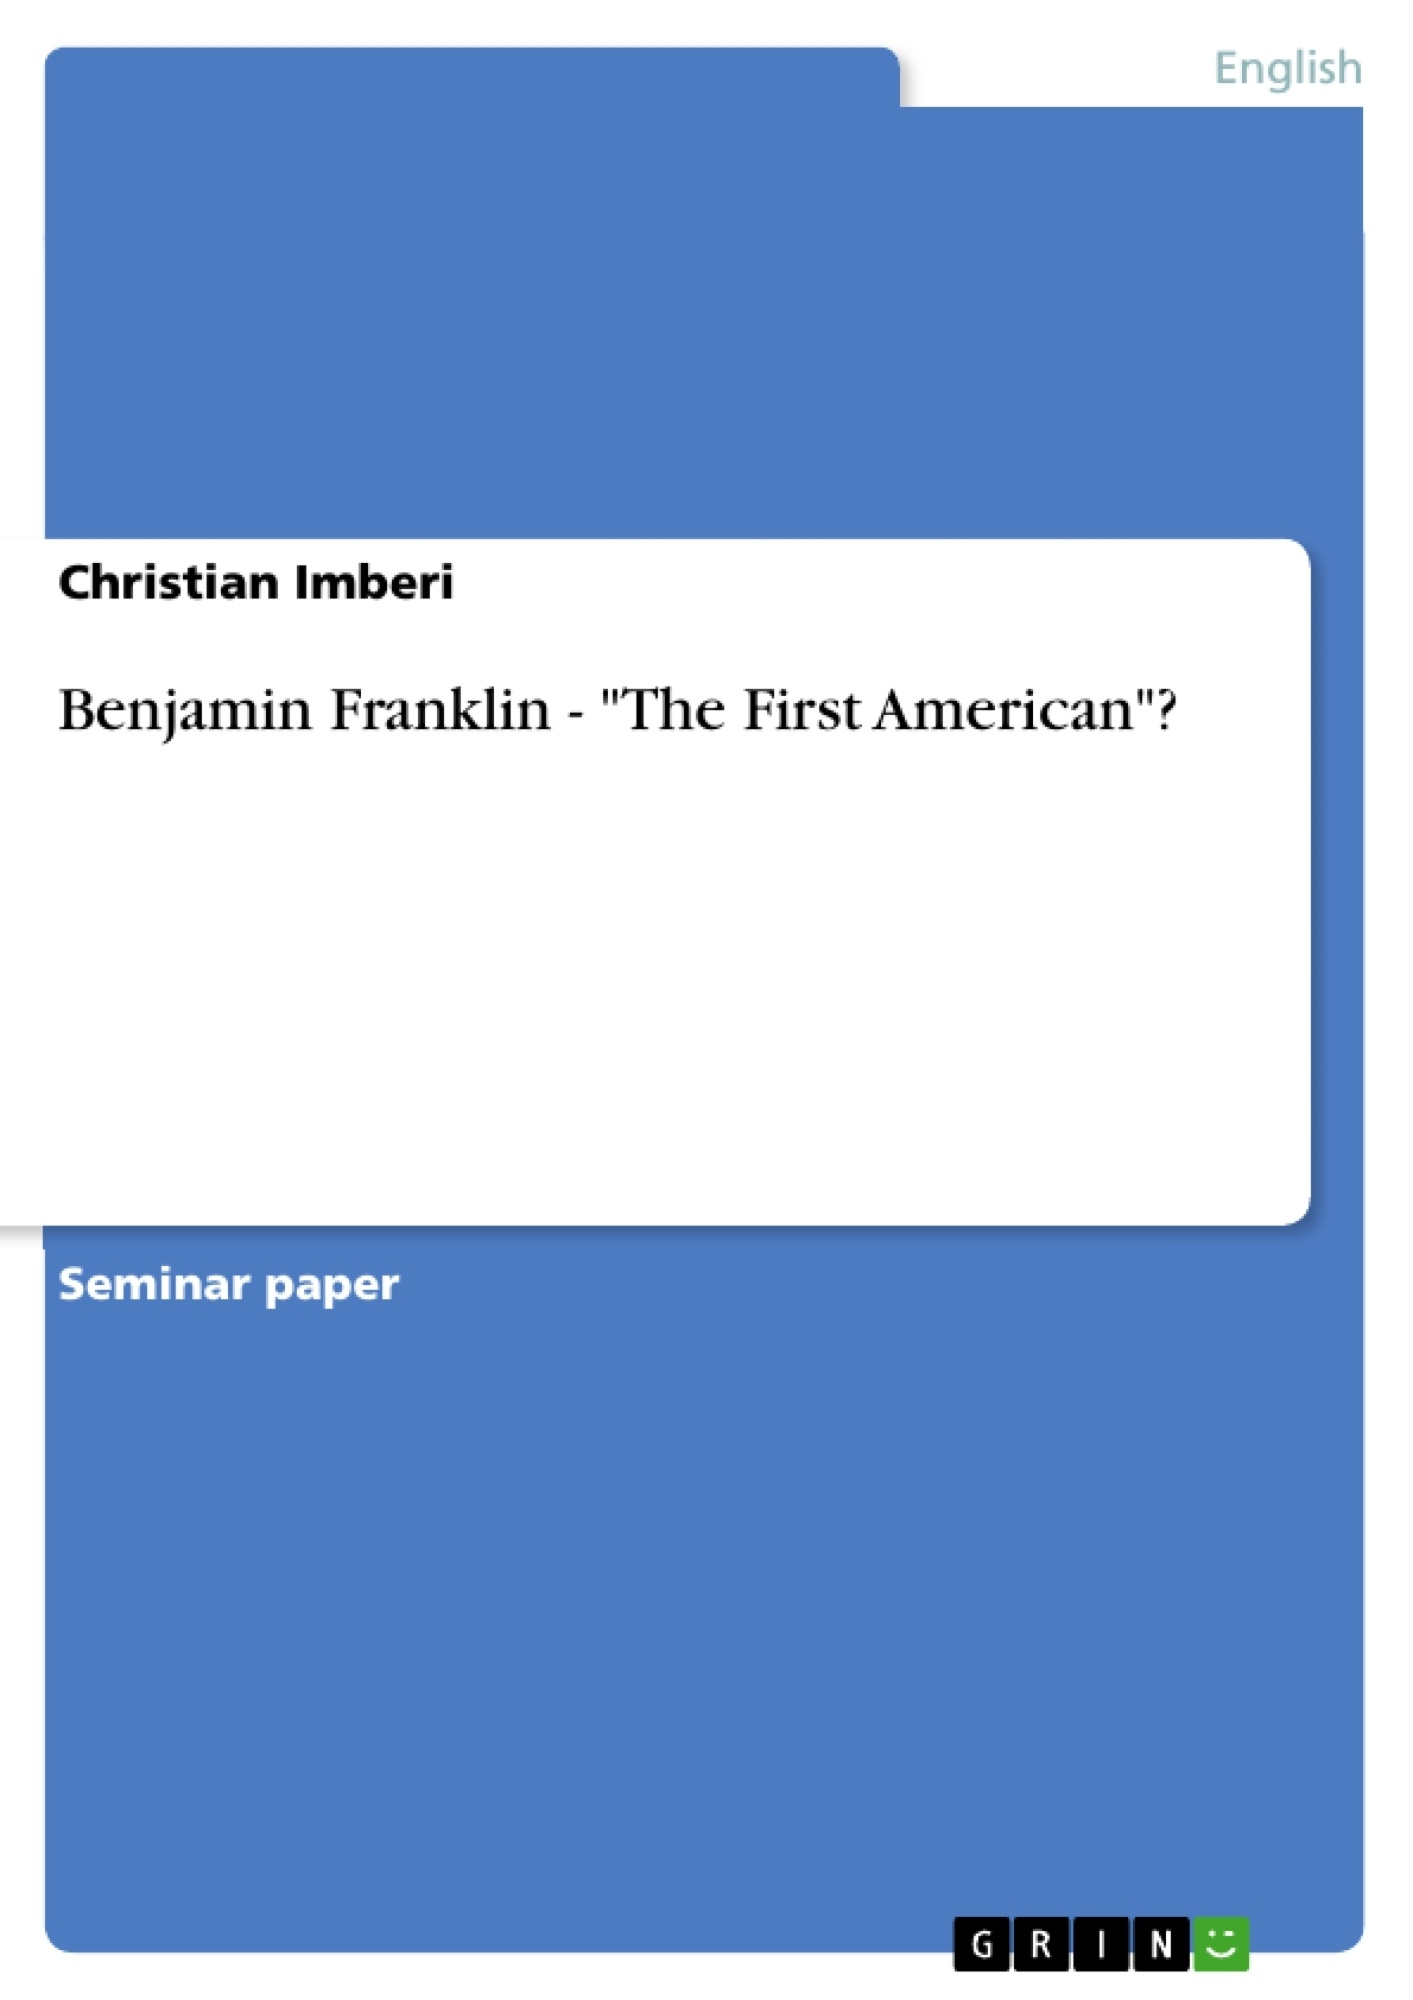 benjamin franklin the first american publish your master s upload your own papers earn money and win an iphone 7